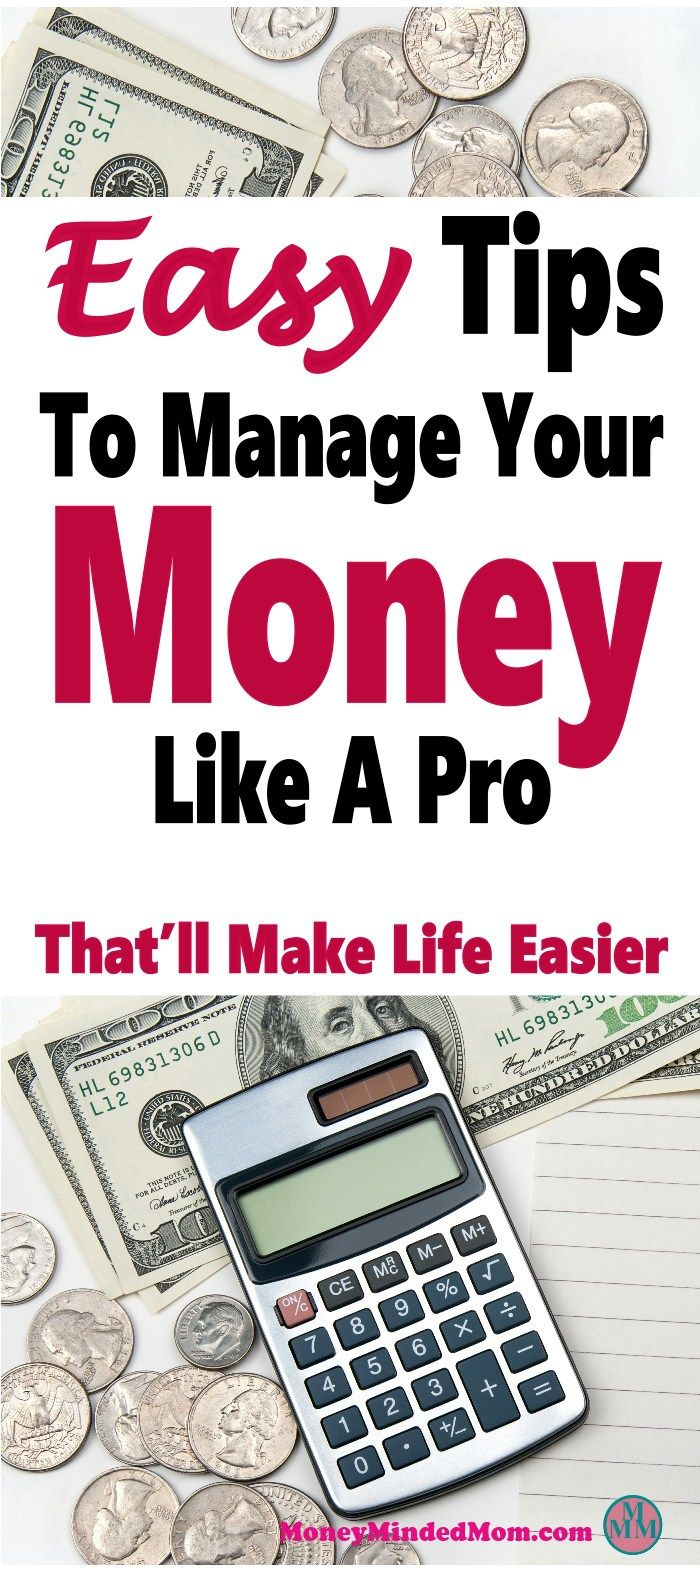 5 Easy Tips To Manage Your Money Like A Pro We All Have Learn Our If Want Save Stay On Budget Get Out